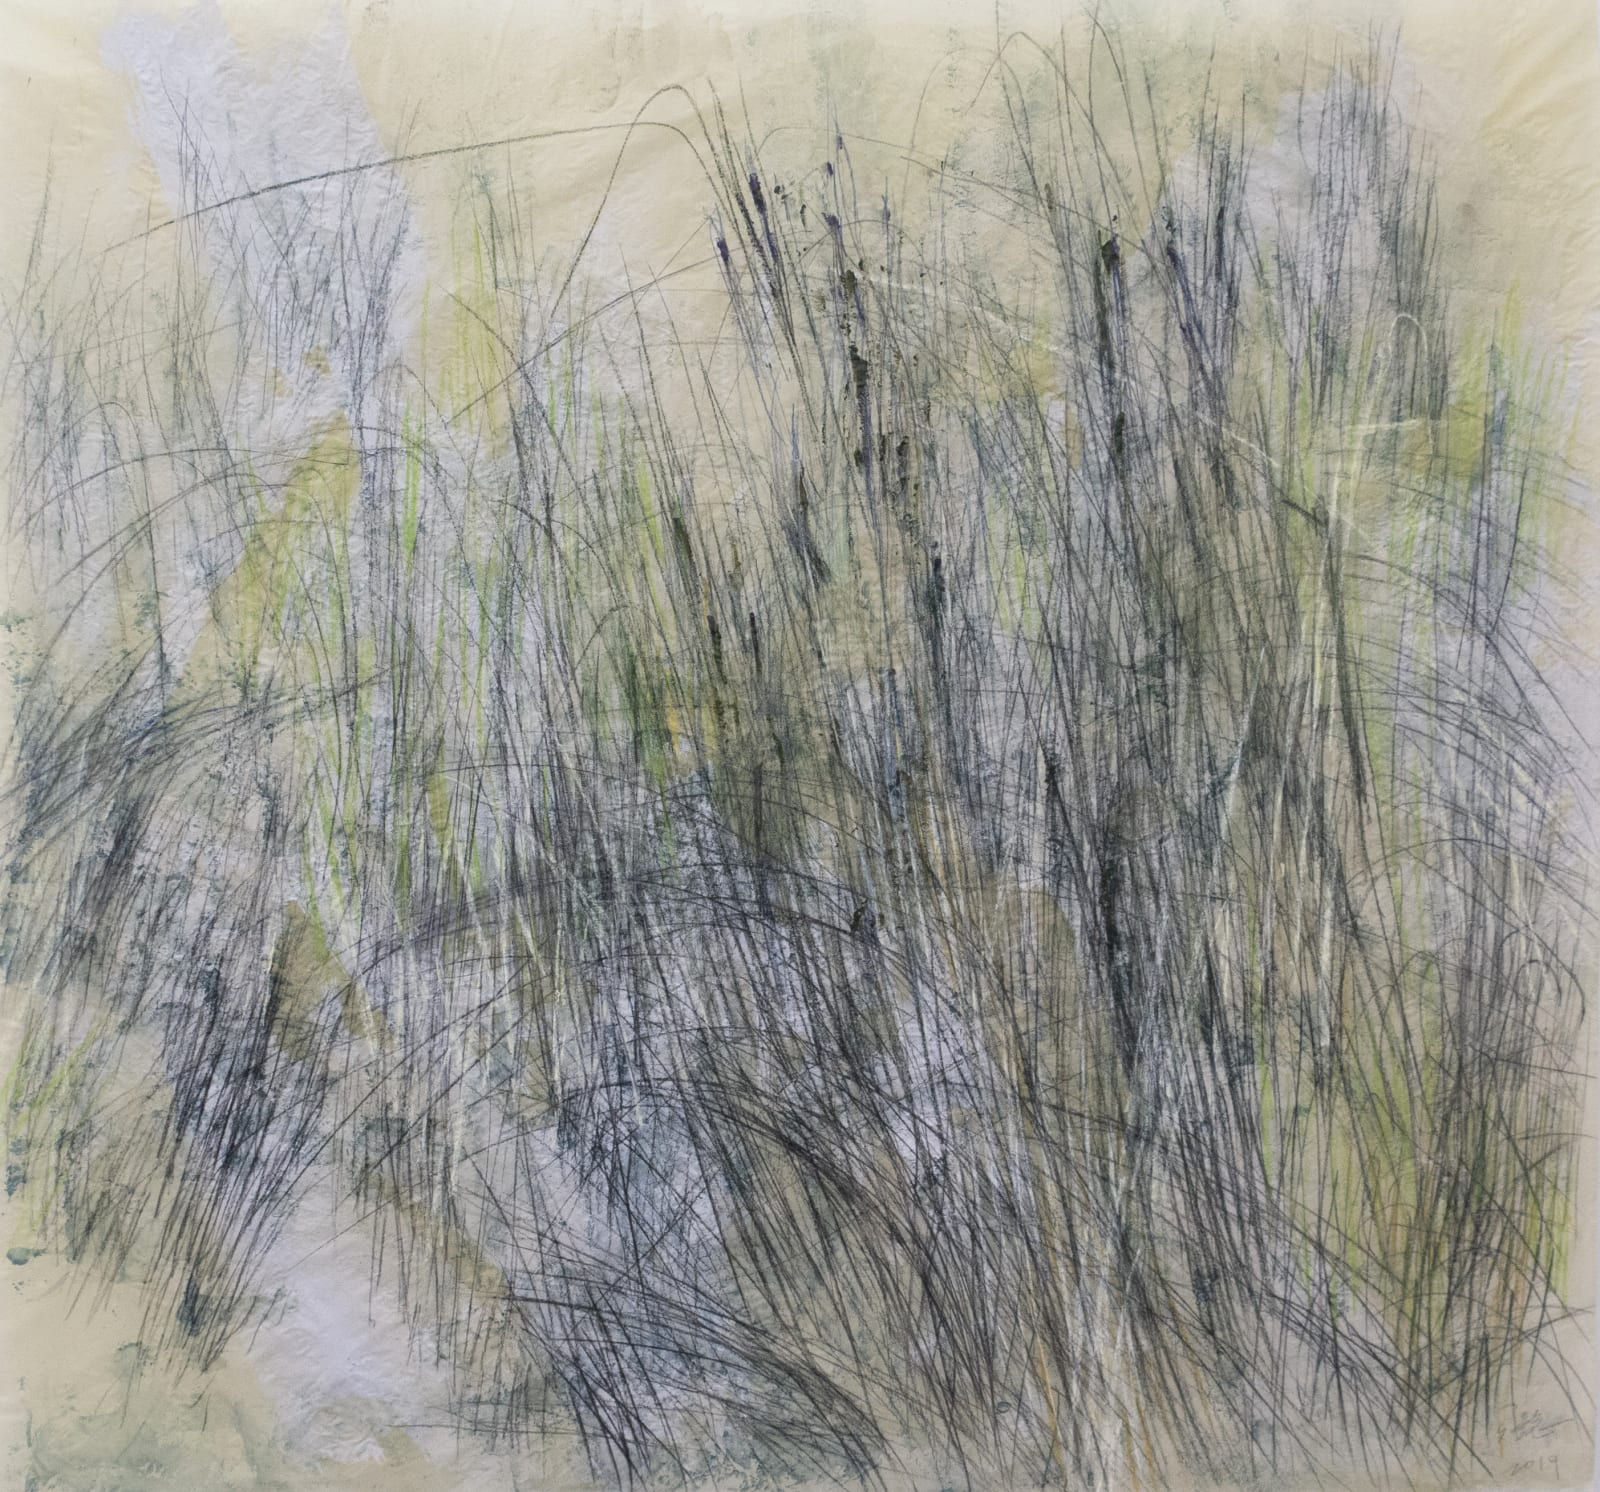 Wang Gongyi 王公懿, Leaves of Grass No.2 草葉集之二, 2019